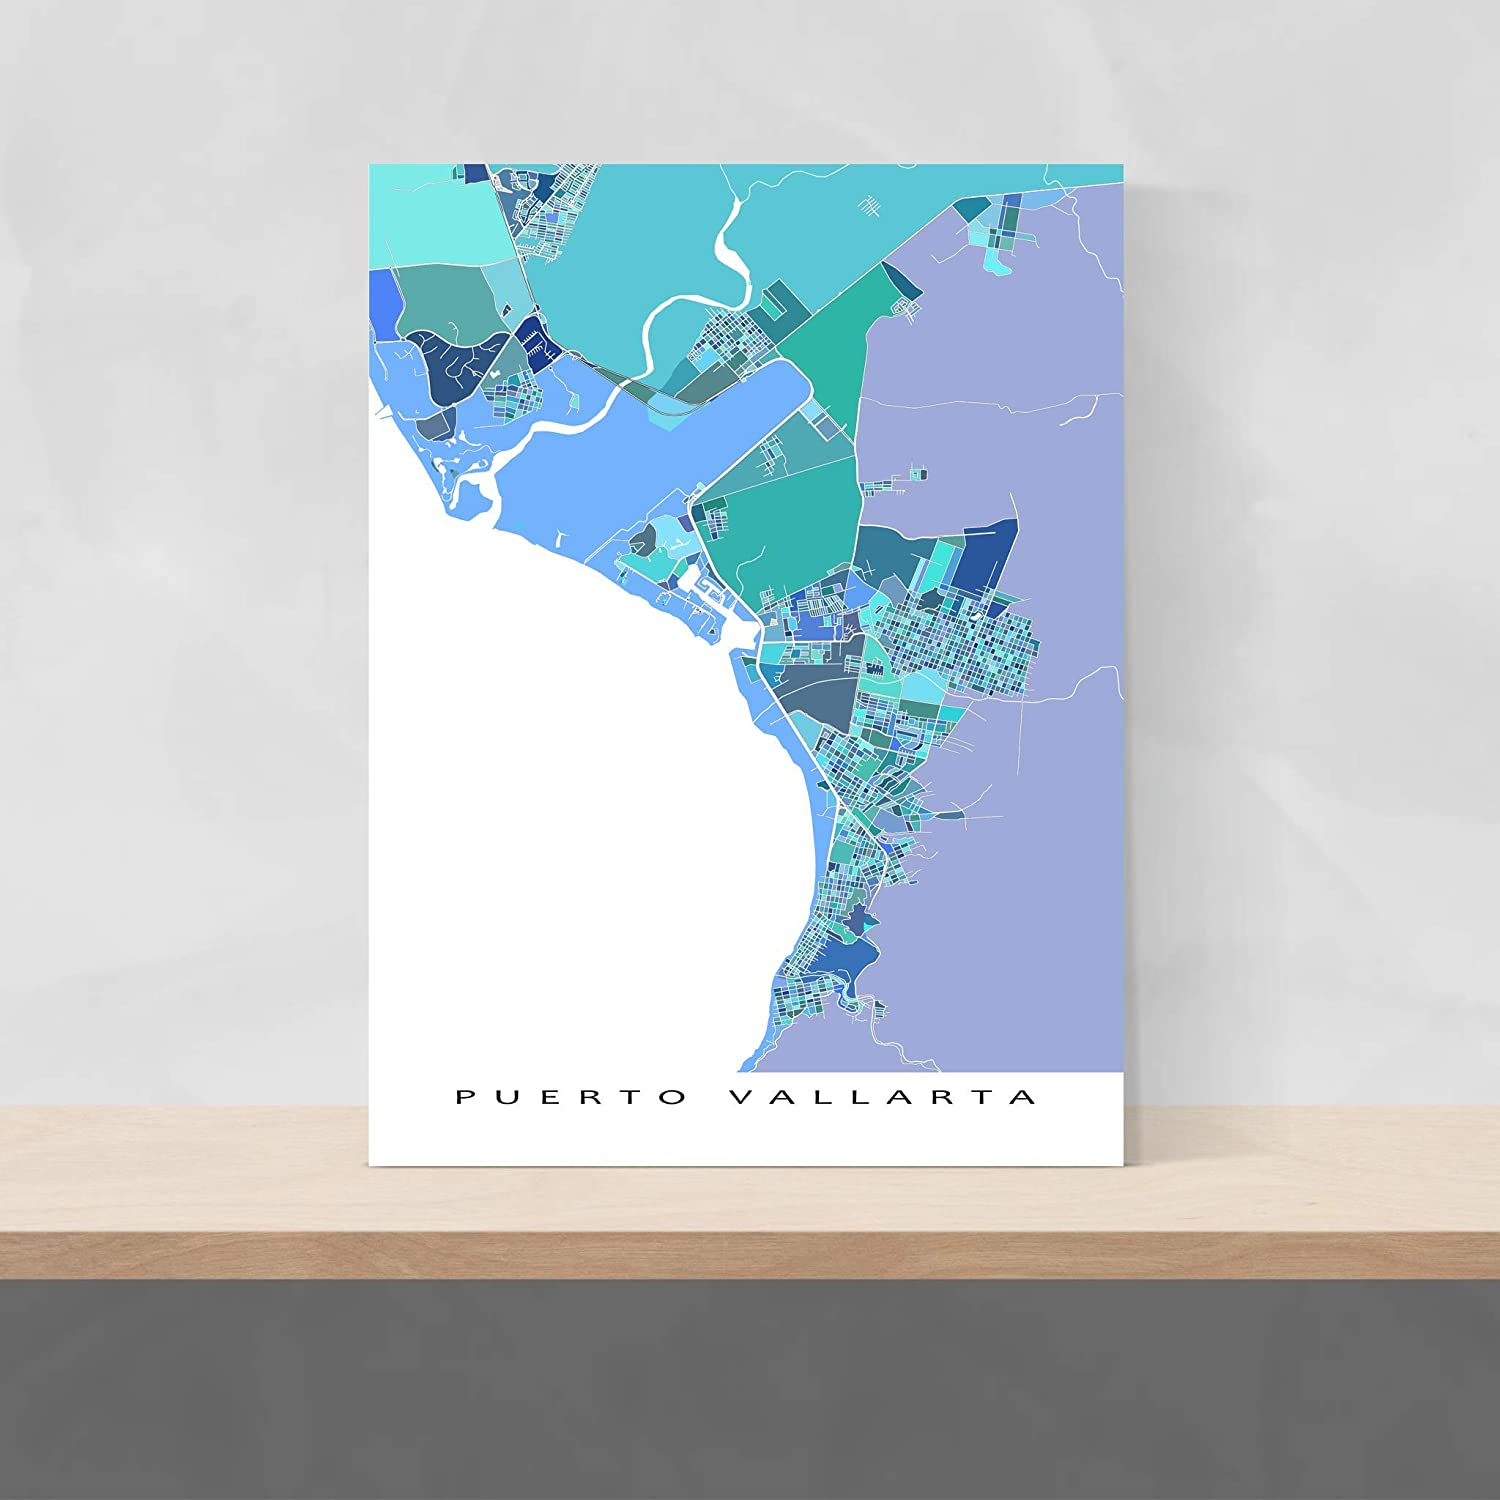 Puerto Vallarta World Map.Amazon Com Puerto Vallarta Map Art Print Mexico City Poster Handmade